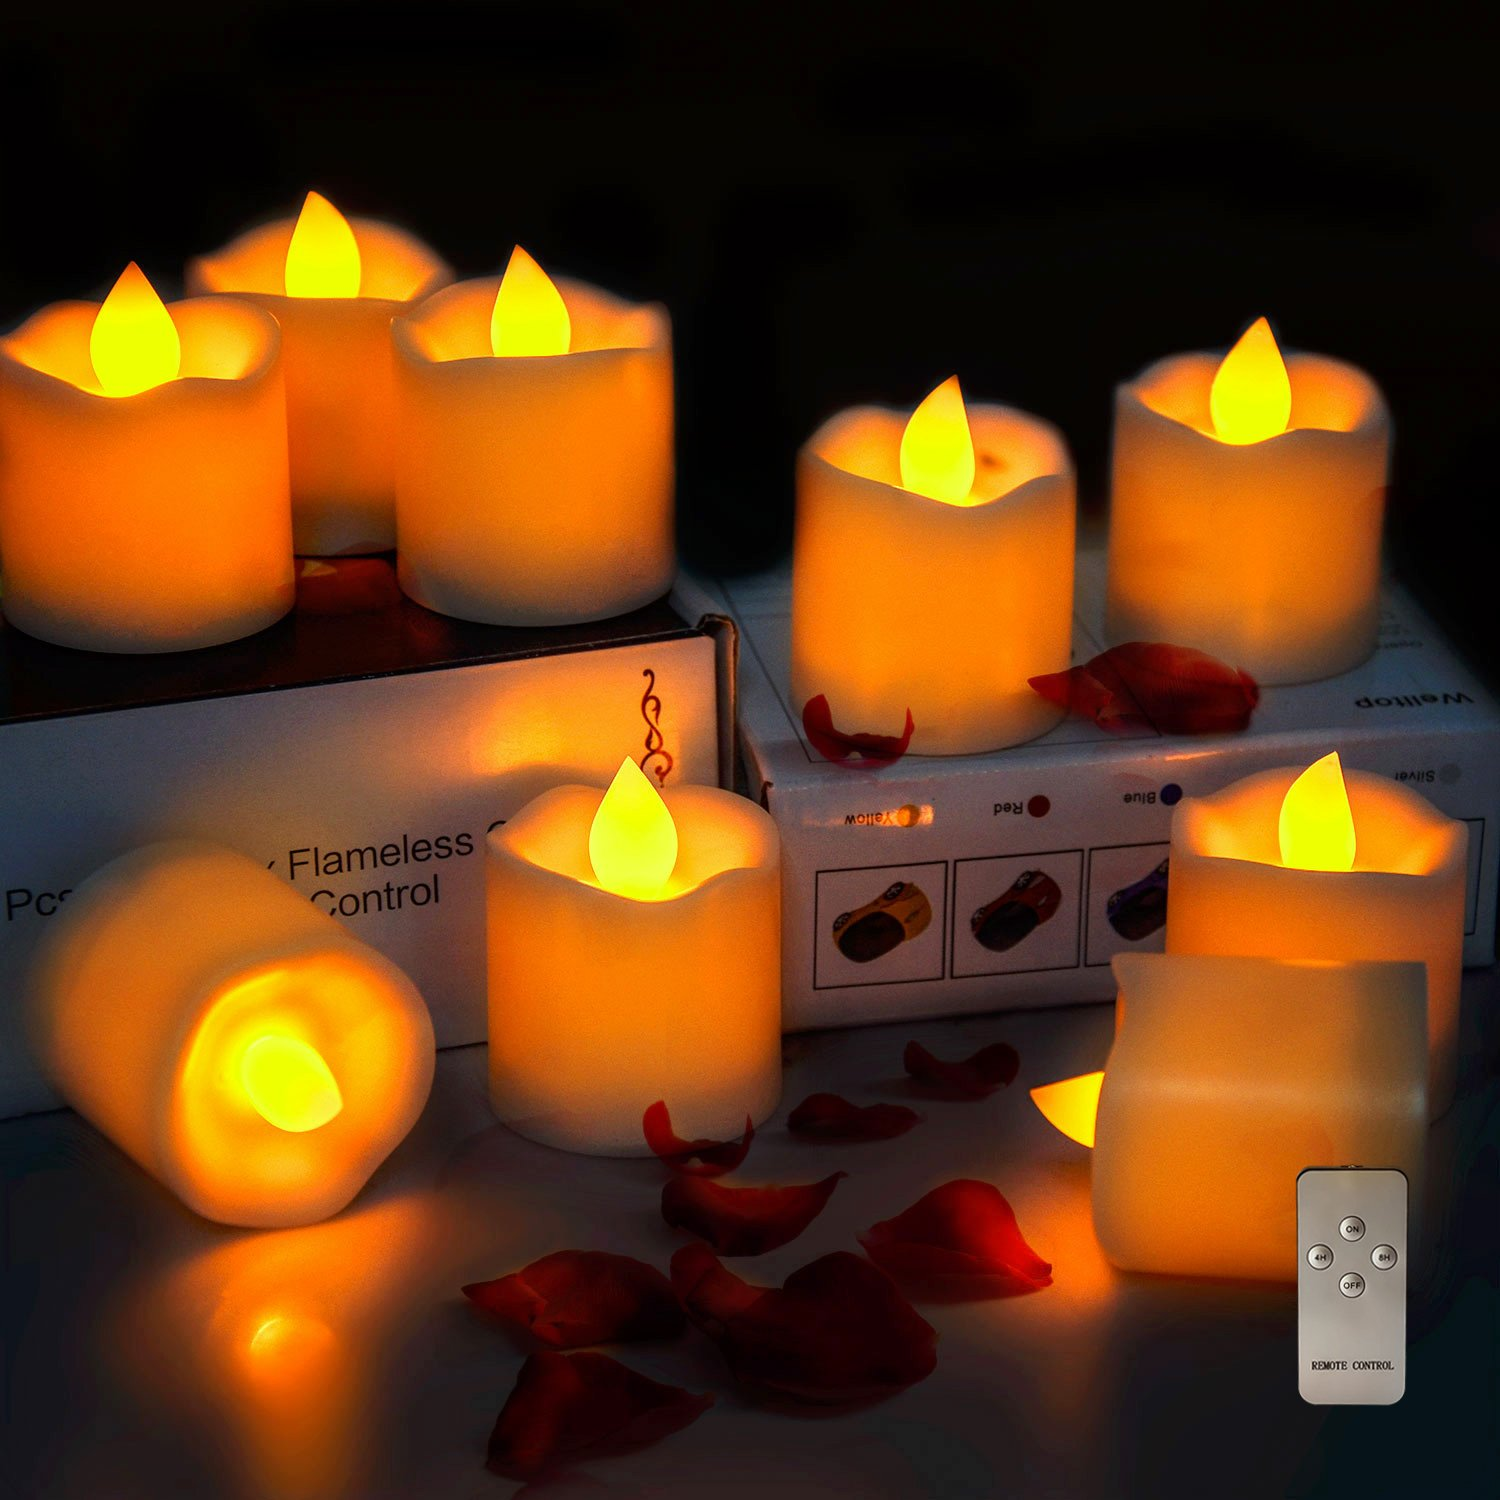 led flickering pack co lighting tea imp celebration homemory flameless bright festival wave and of warm open white in seasonal fake selection bulb wavy candle lights light global realistic electric shop xiamen exp operated battery candles for ltd